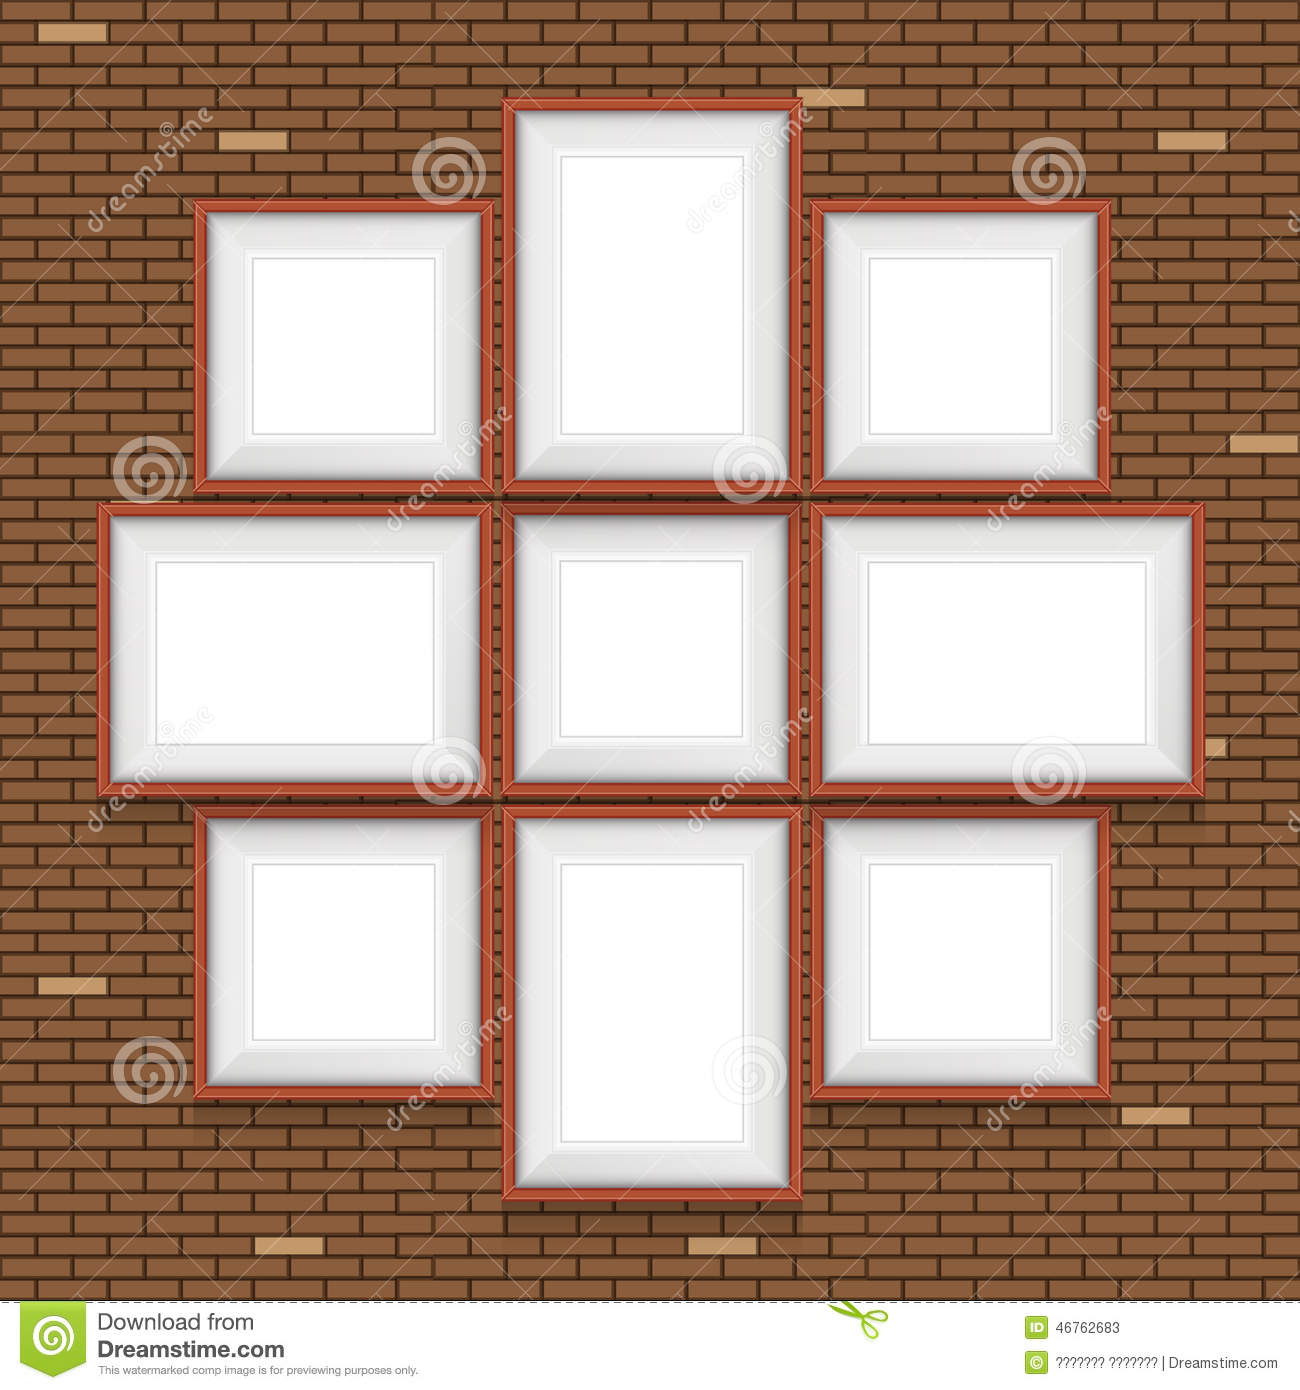 Collage Of Picture Frames On The Brick Wall. Stock Vector ...